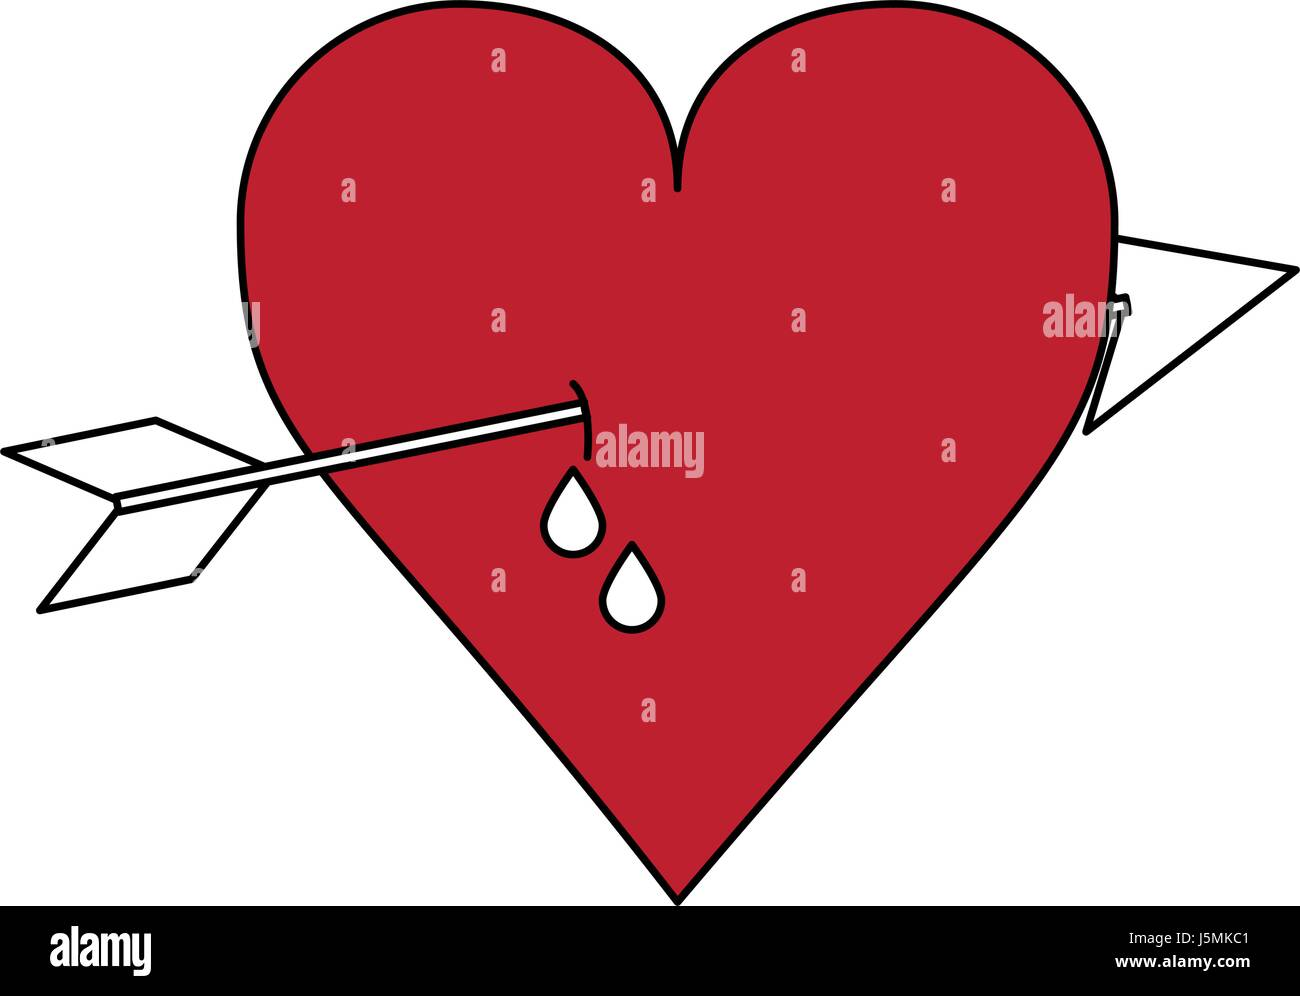 Bleeding heart symbol of love stock photo 32304129 alamy color silhouette image red heart pierced bleeding out by arrow stock photo buycottarizona